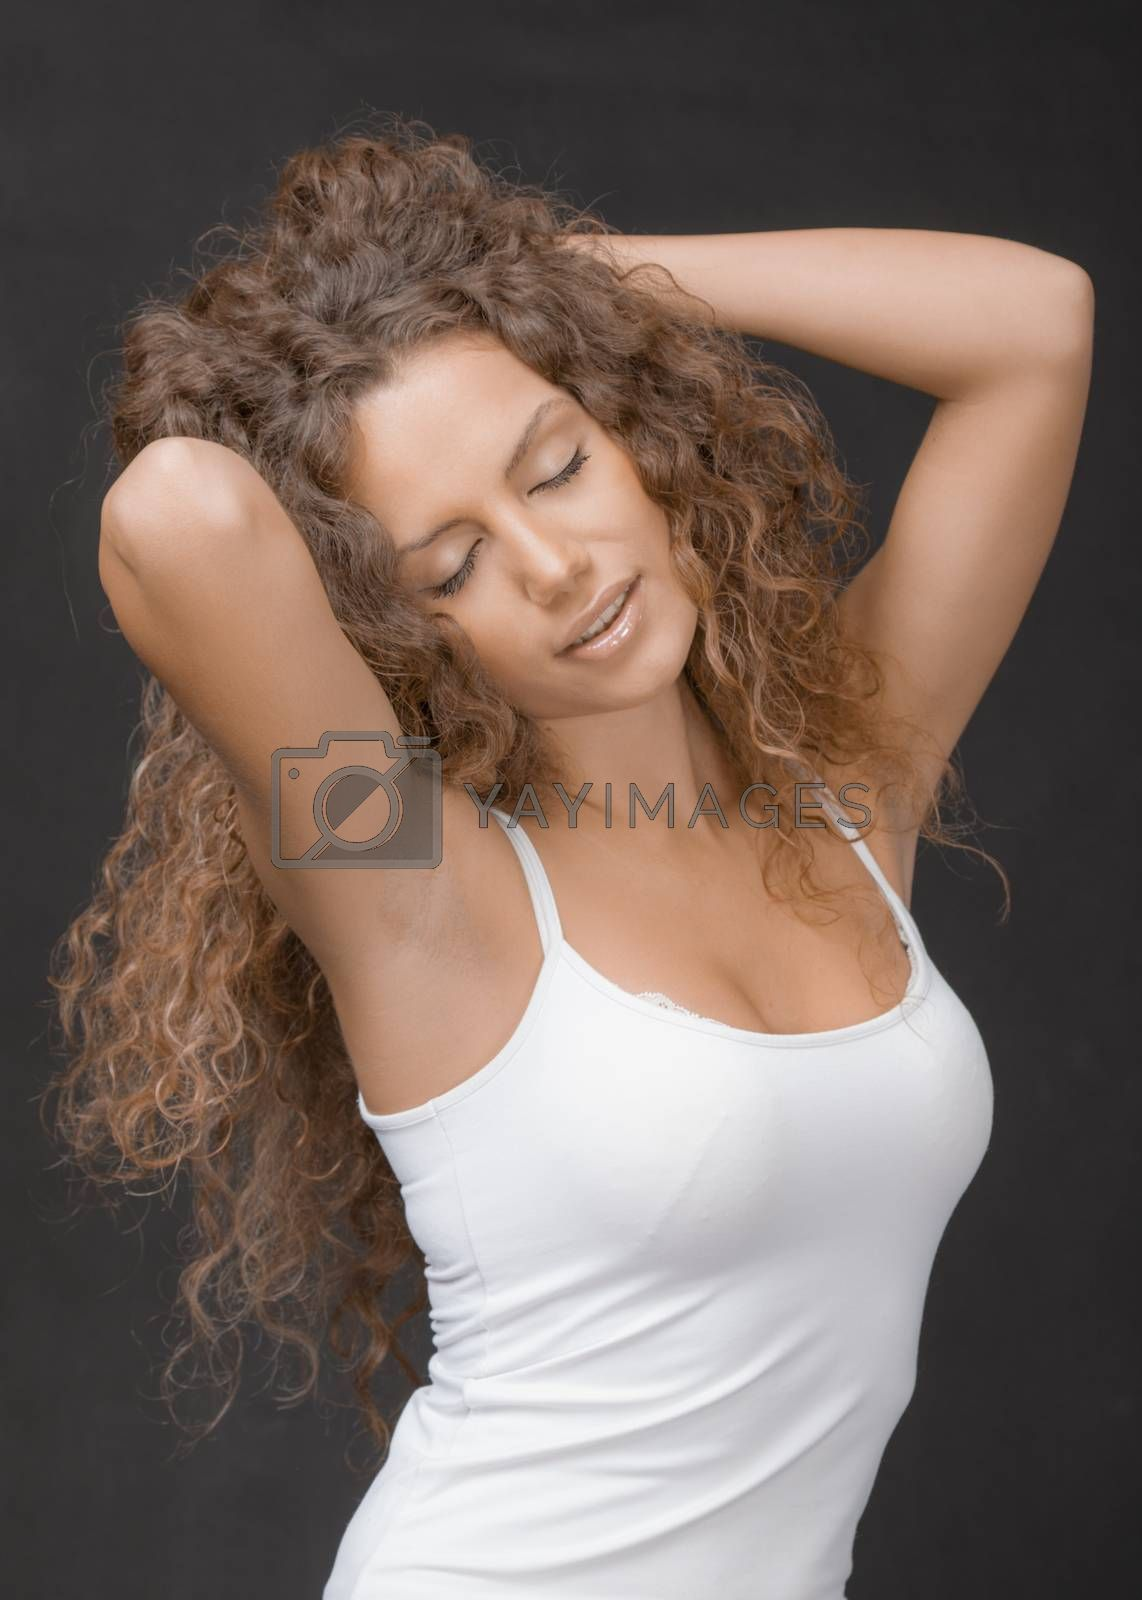 A portrait of a gorgeous woman with long curly hair, closed eyes, arms crossed behind neck stretching.